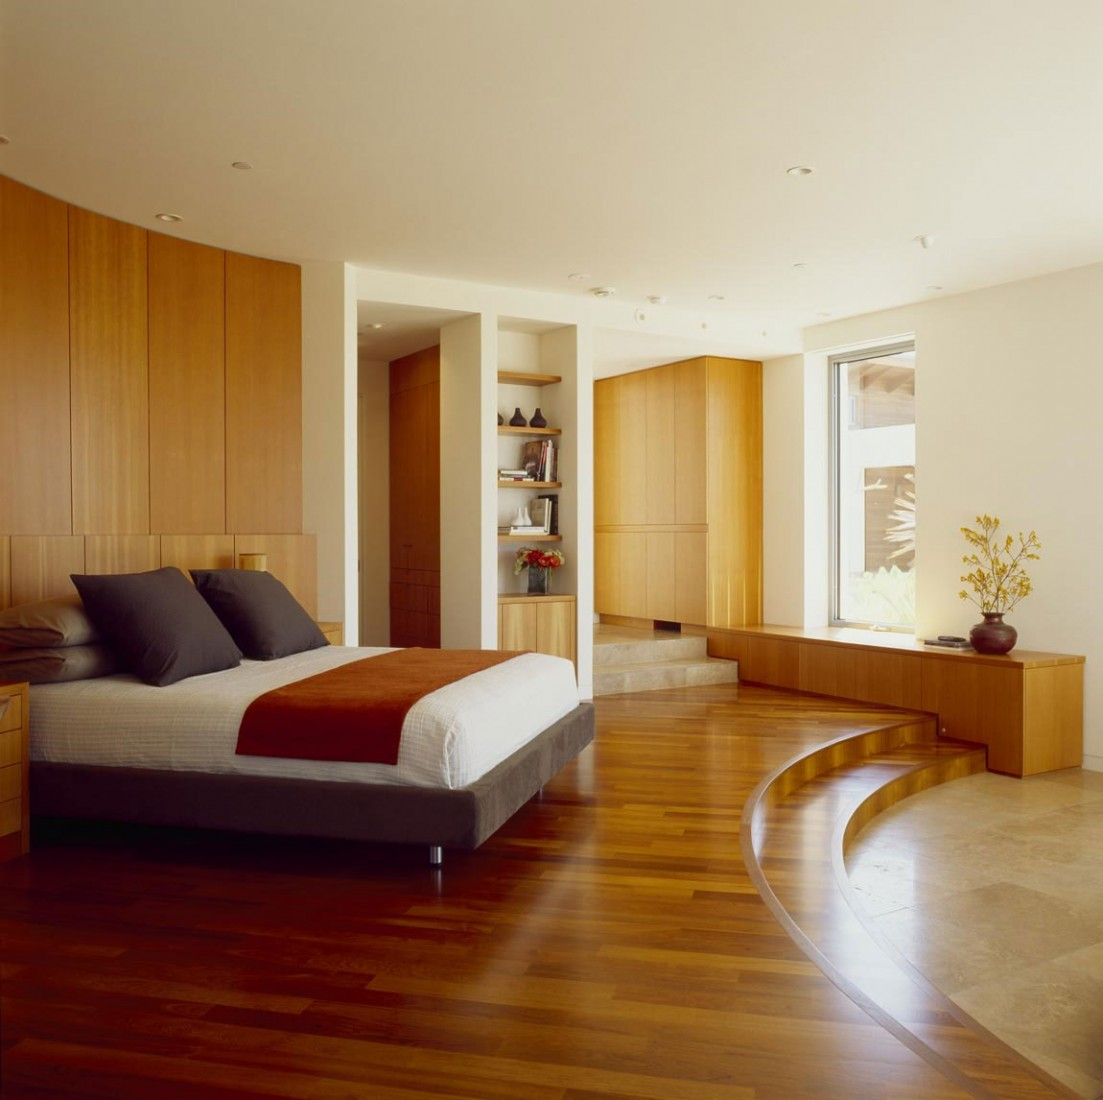 Perfect Hilltop House With Such A Great Interior Design: Awesome Bedroom Design In The Hilltop House With Wooden Floor